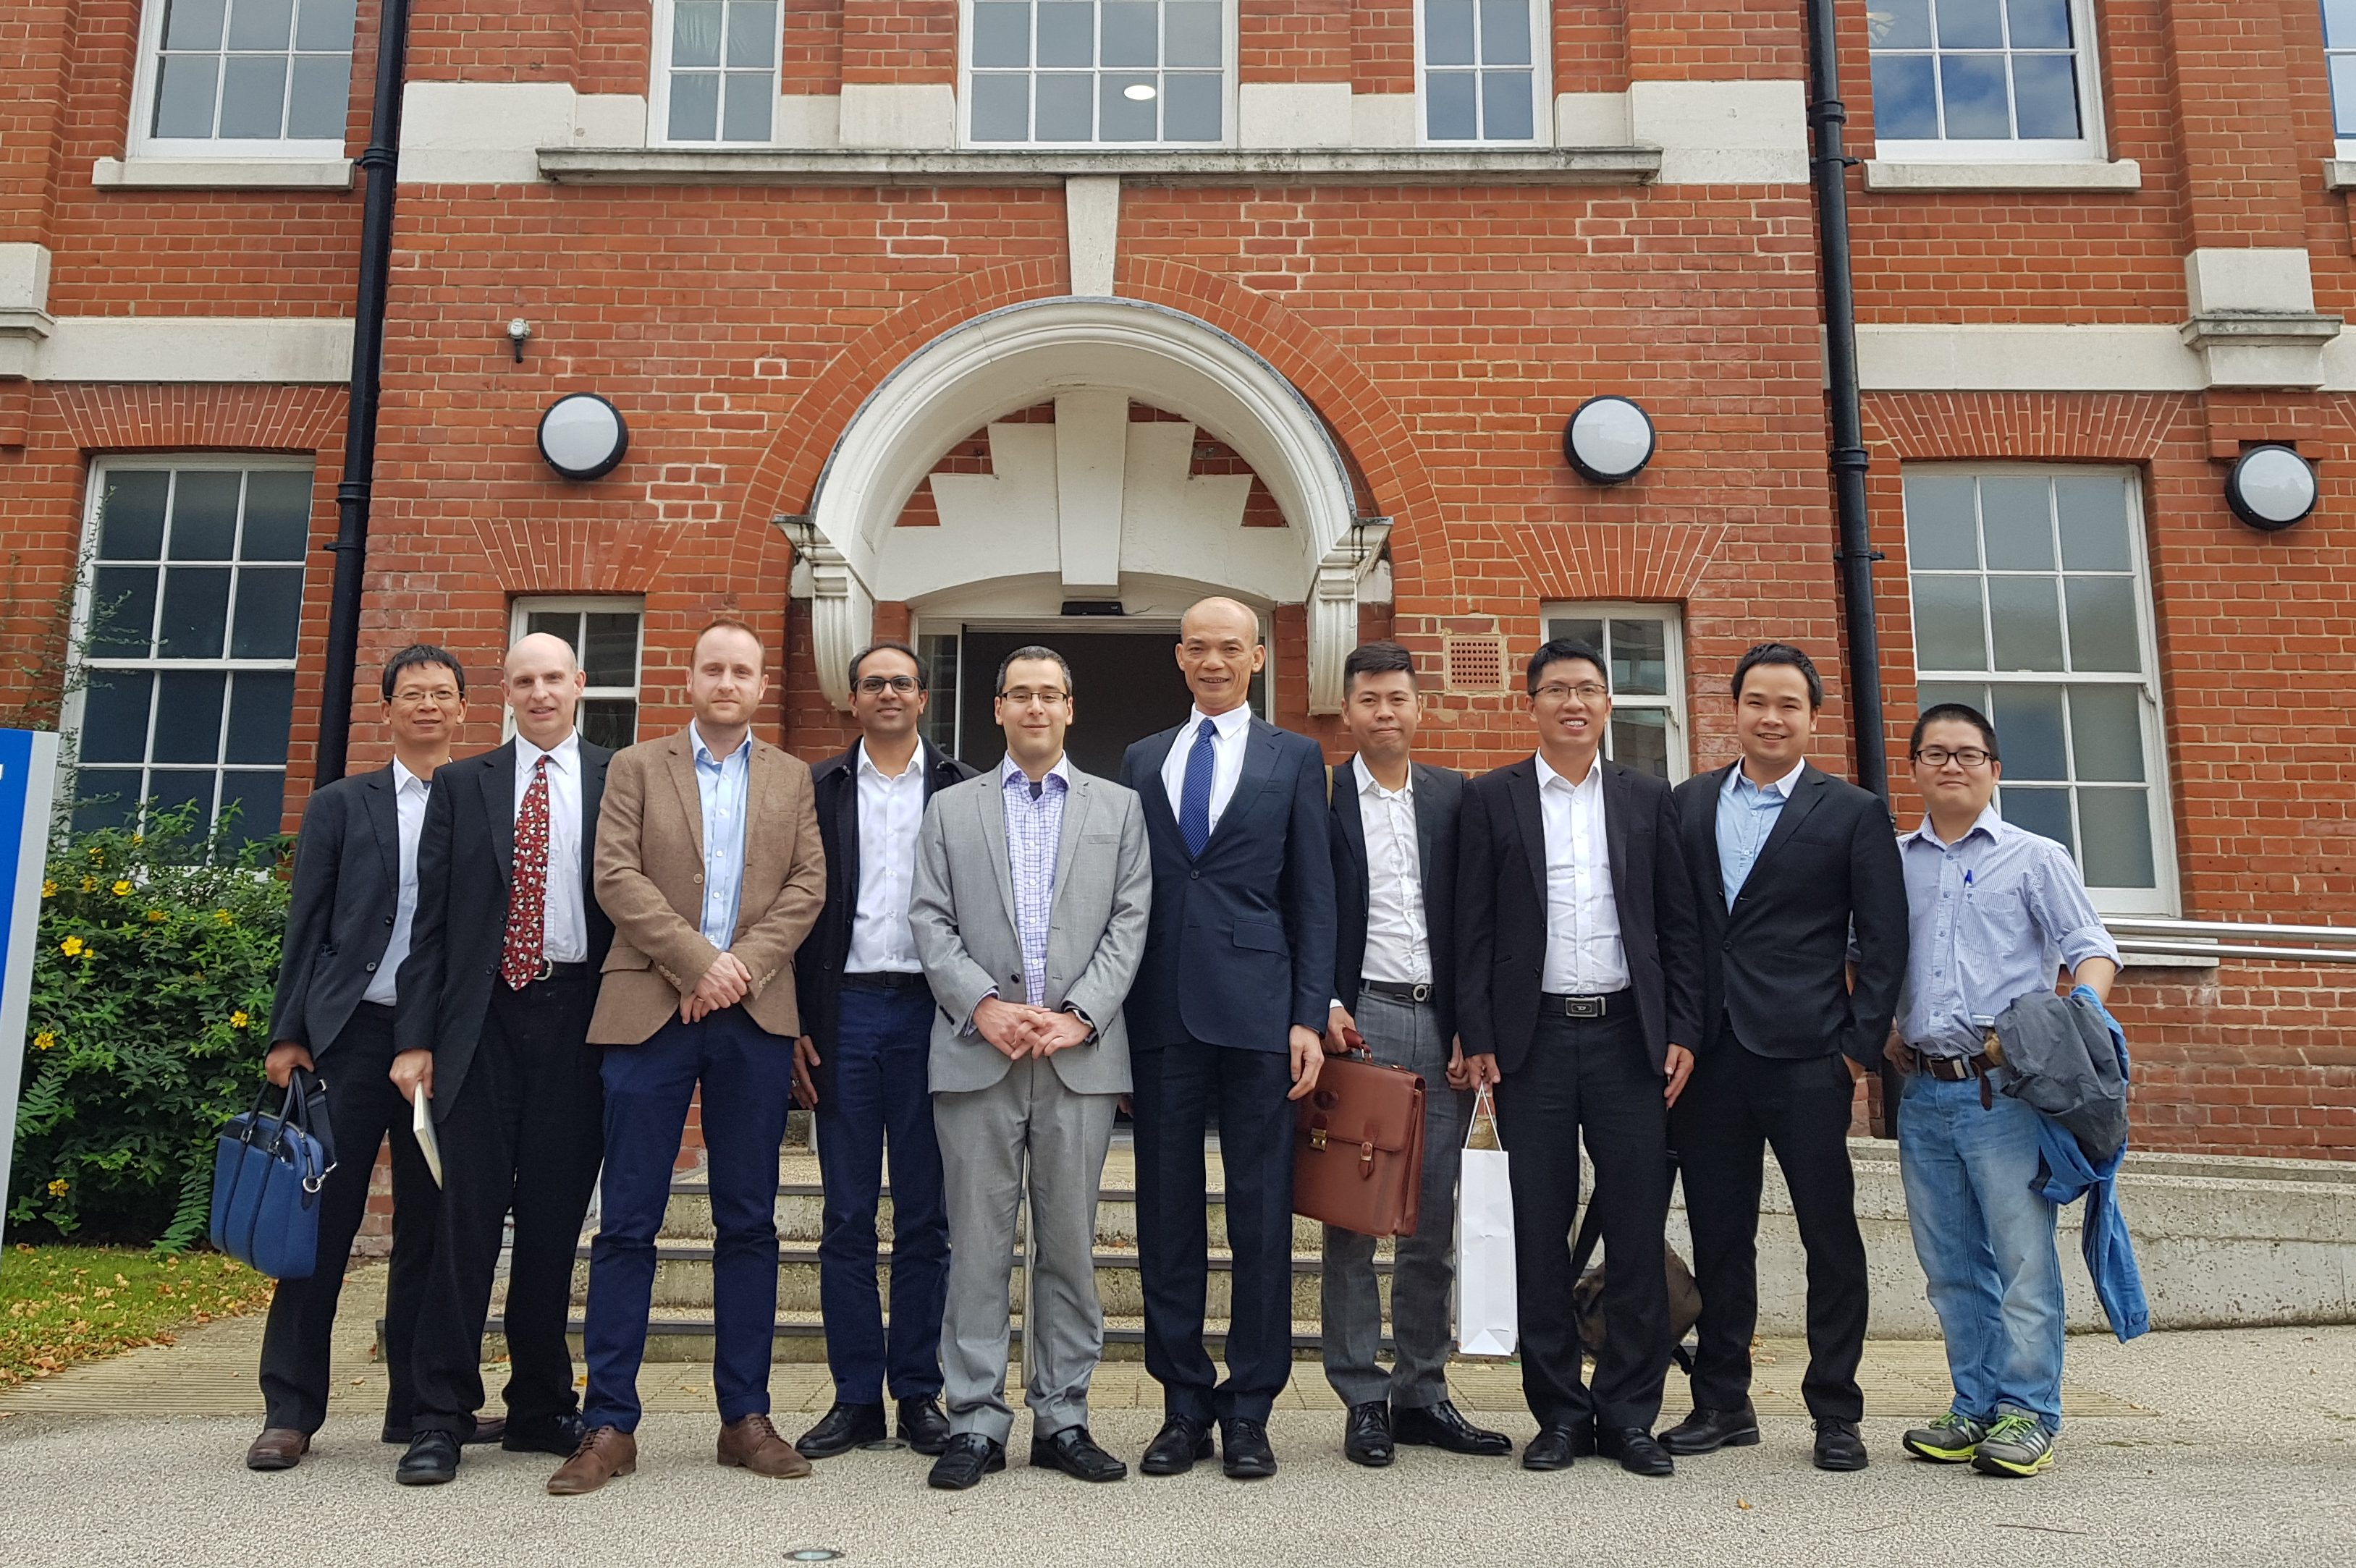 The School of Computing in Medway hosted a meeting with a Vietnamese bank CEO